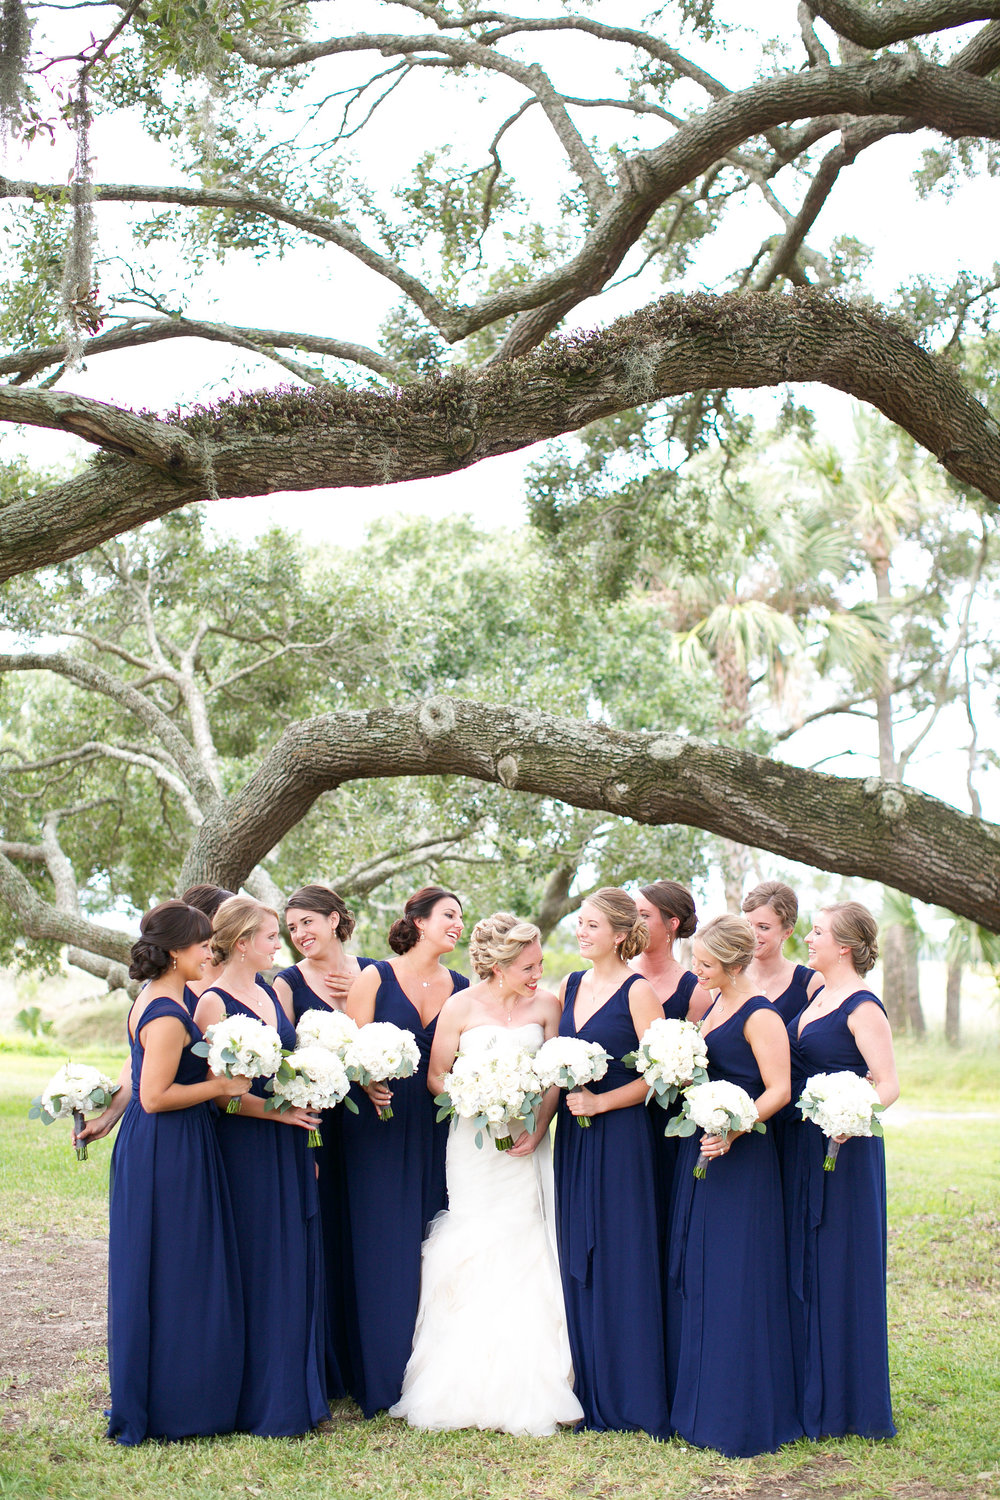 Bridesmaid Details - Kiawah Island, South Carolina - Fall Wedding - Julian Leaver Events